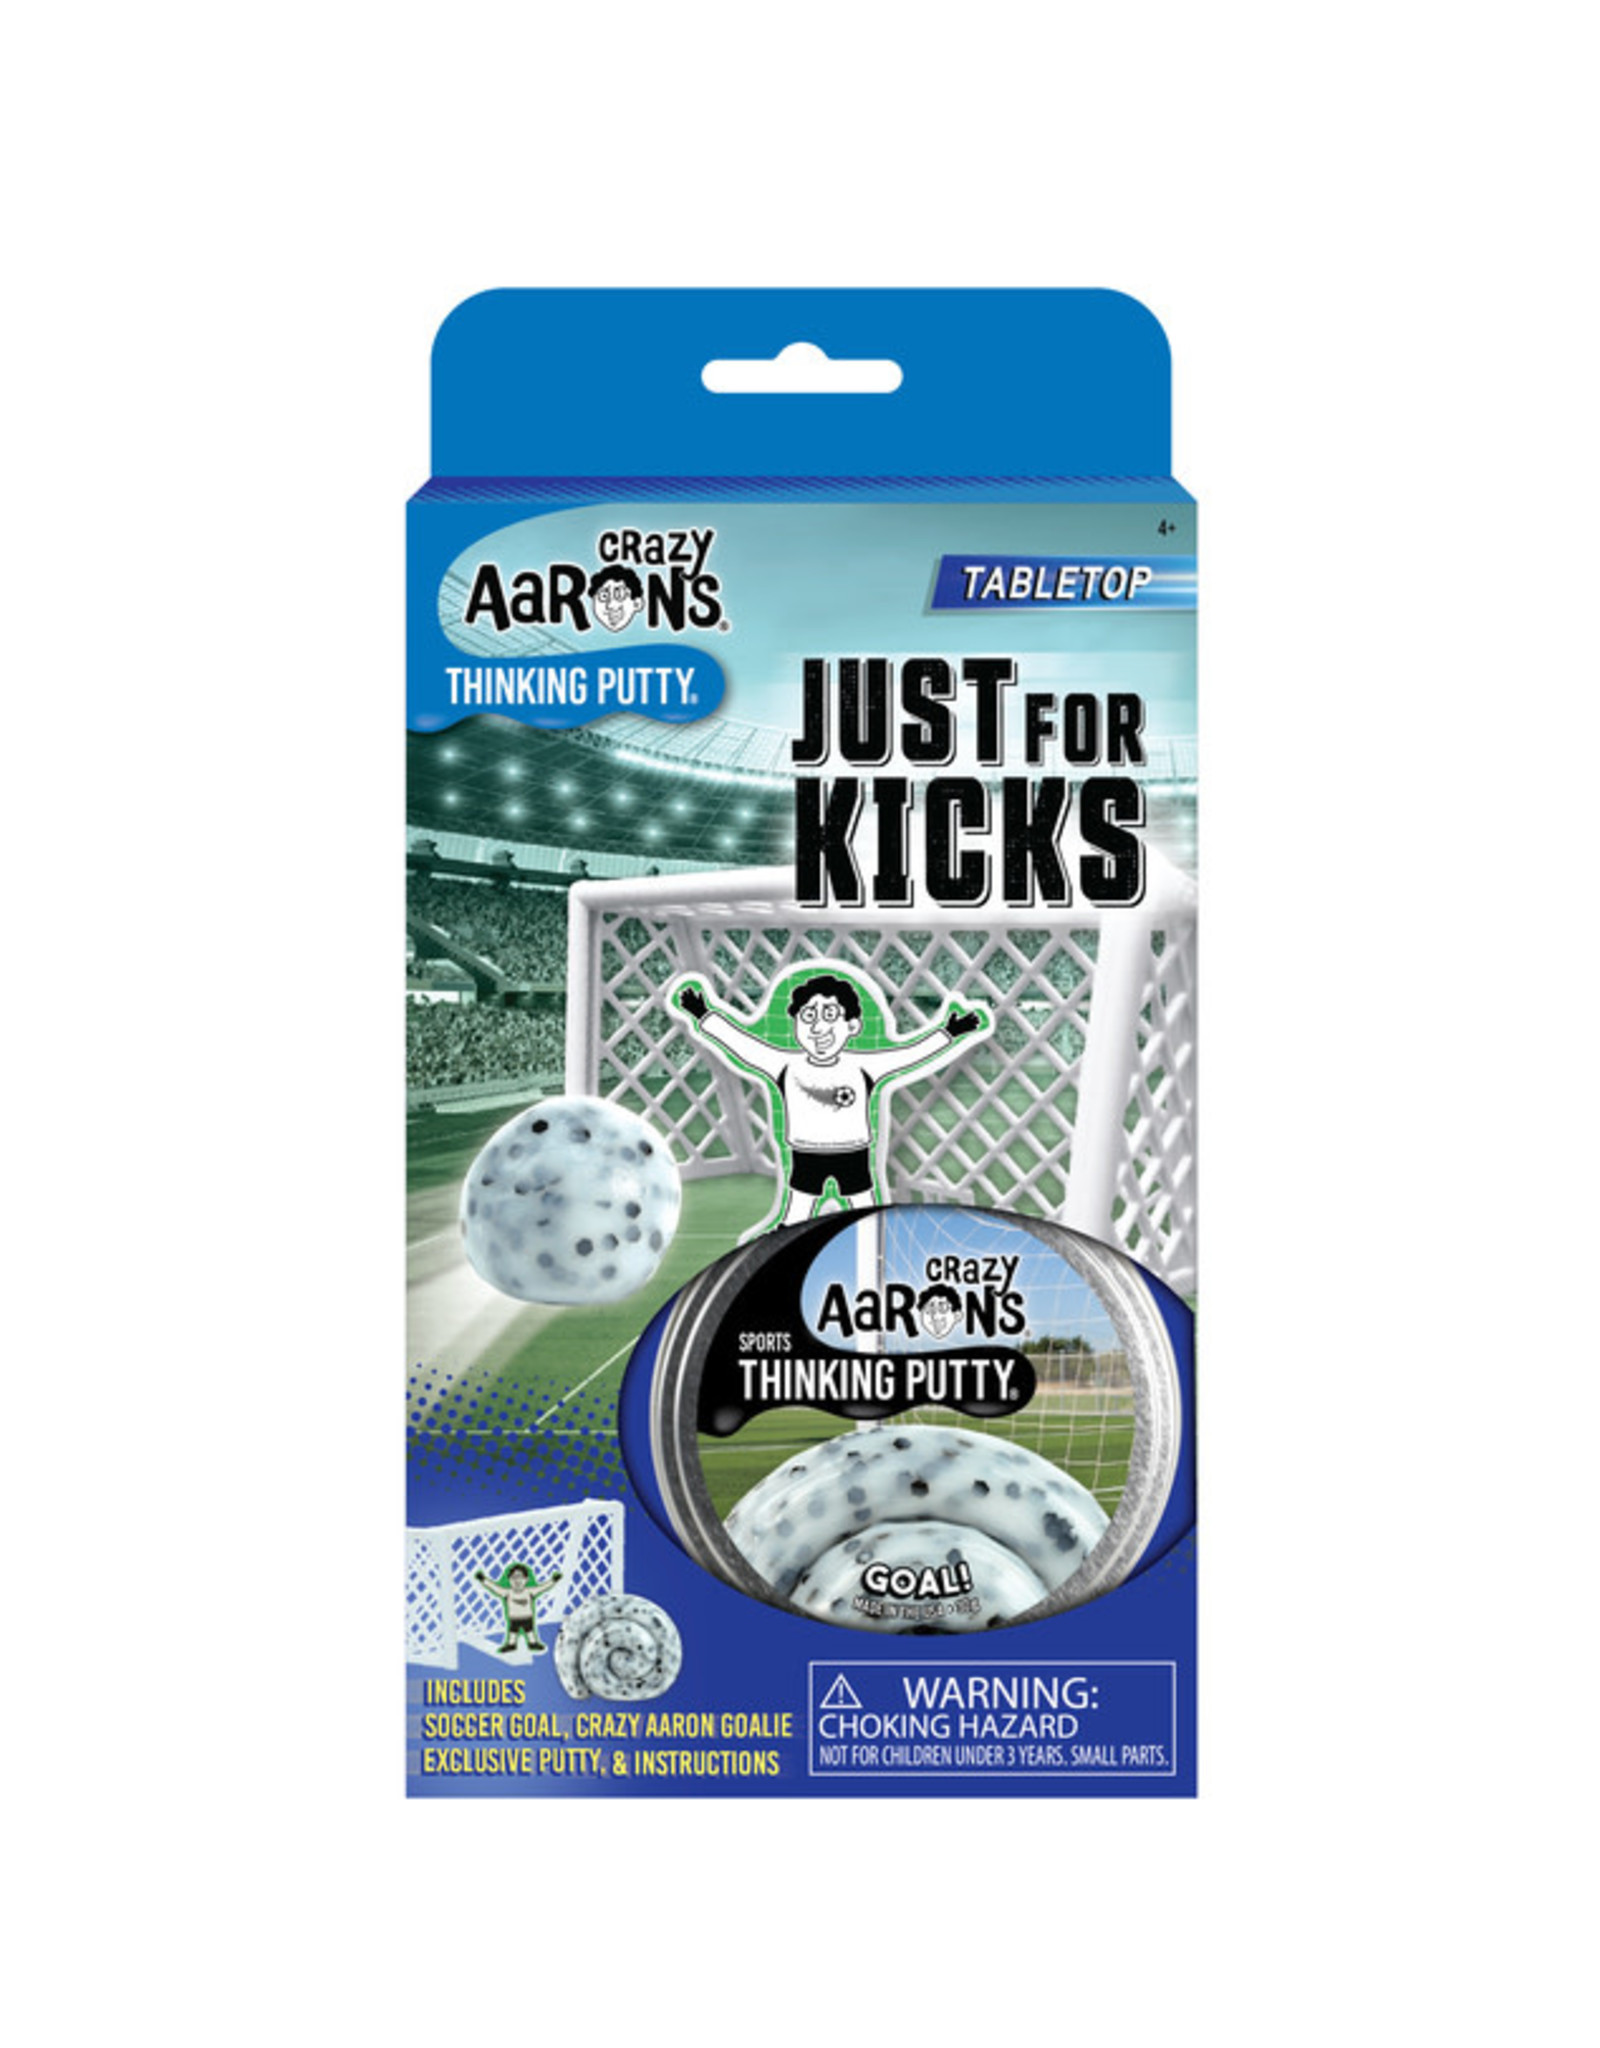 Crazy Aaron's Crazy Aaron's Sports Putty - Just For Kicks Goal!